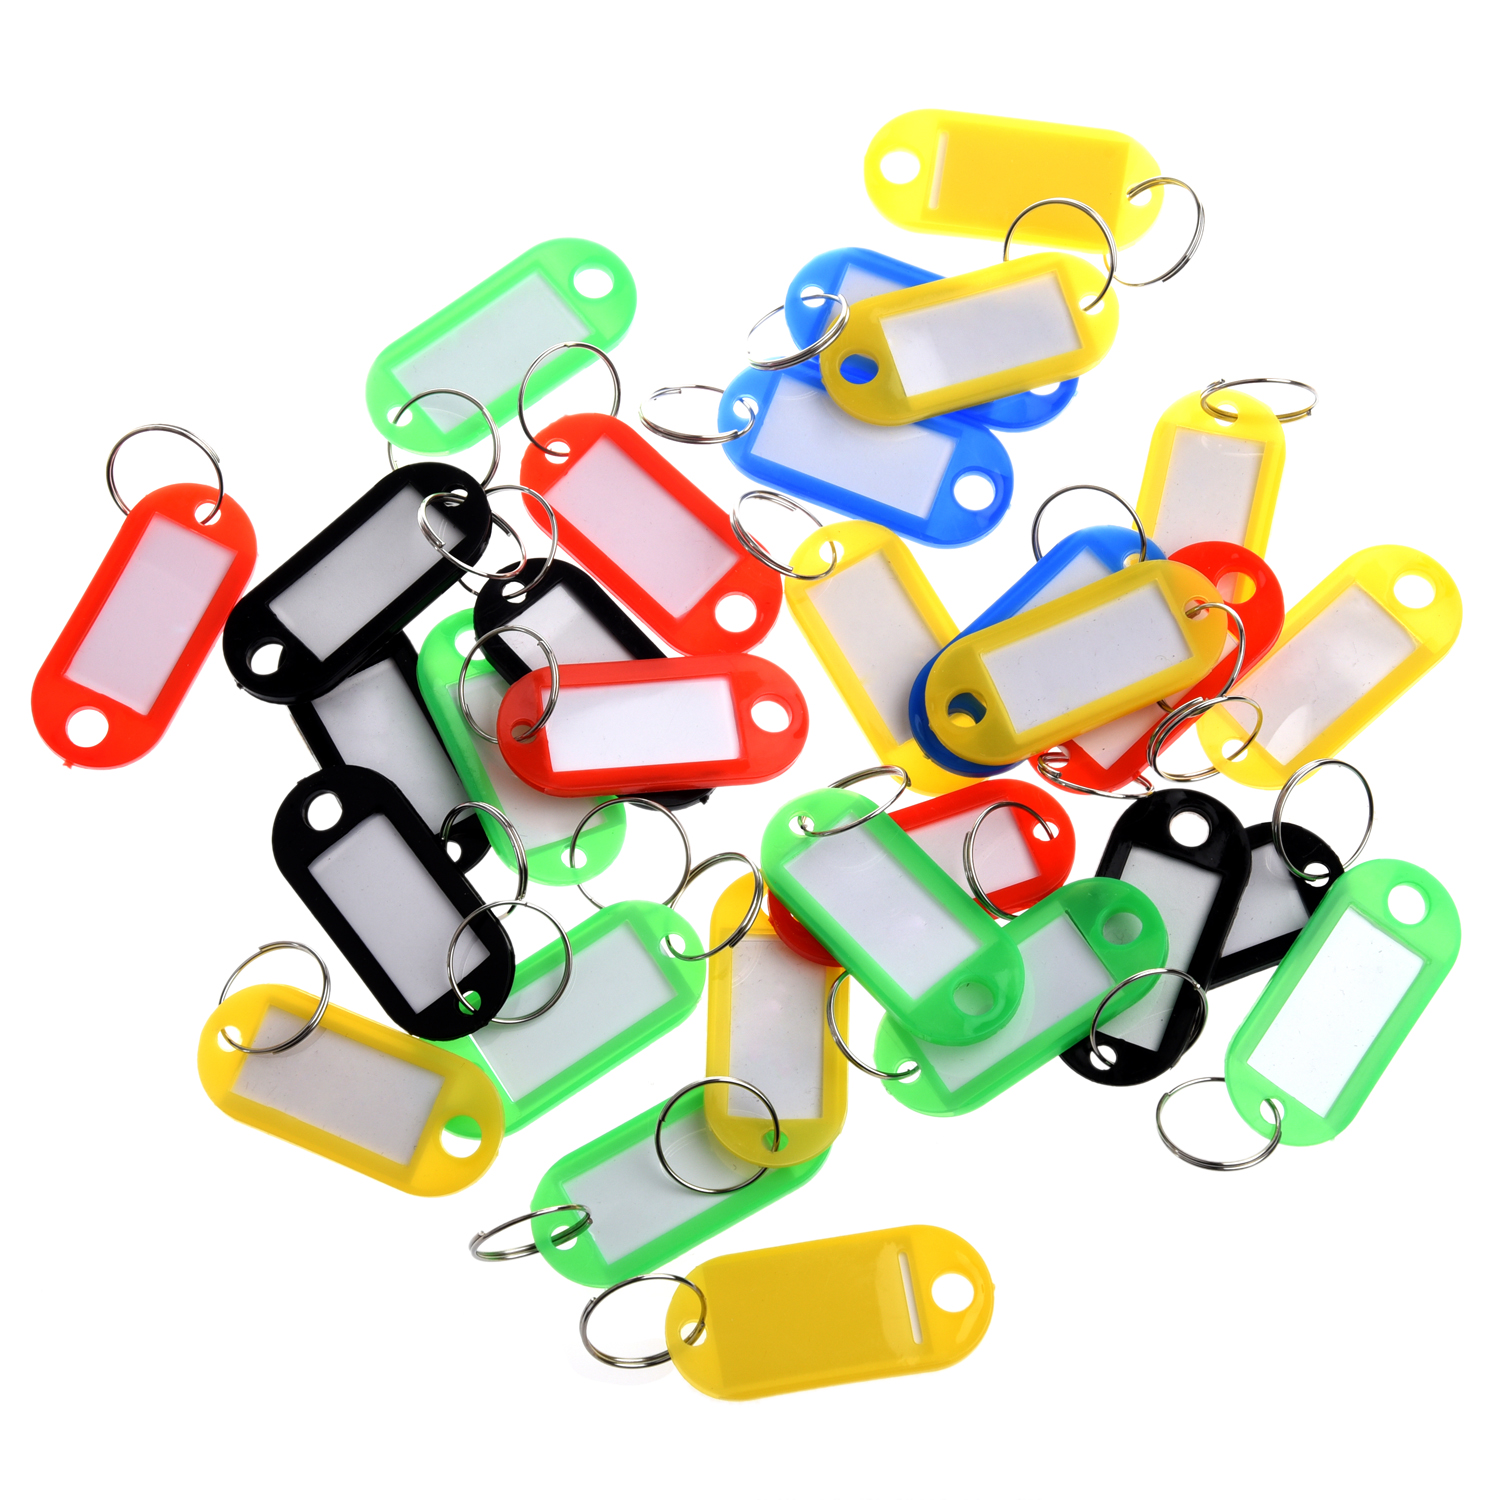 30 XColoured Plastic Key Fobs Luggage ID Tags Labels Key Rings With Name Cards,It's For Keys Bunches,Memory Sticks,Pets& Etc